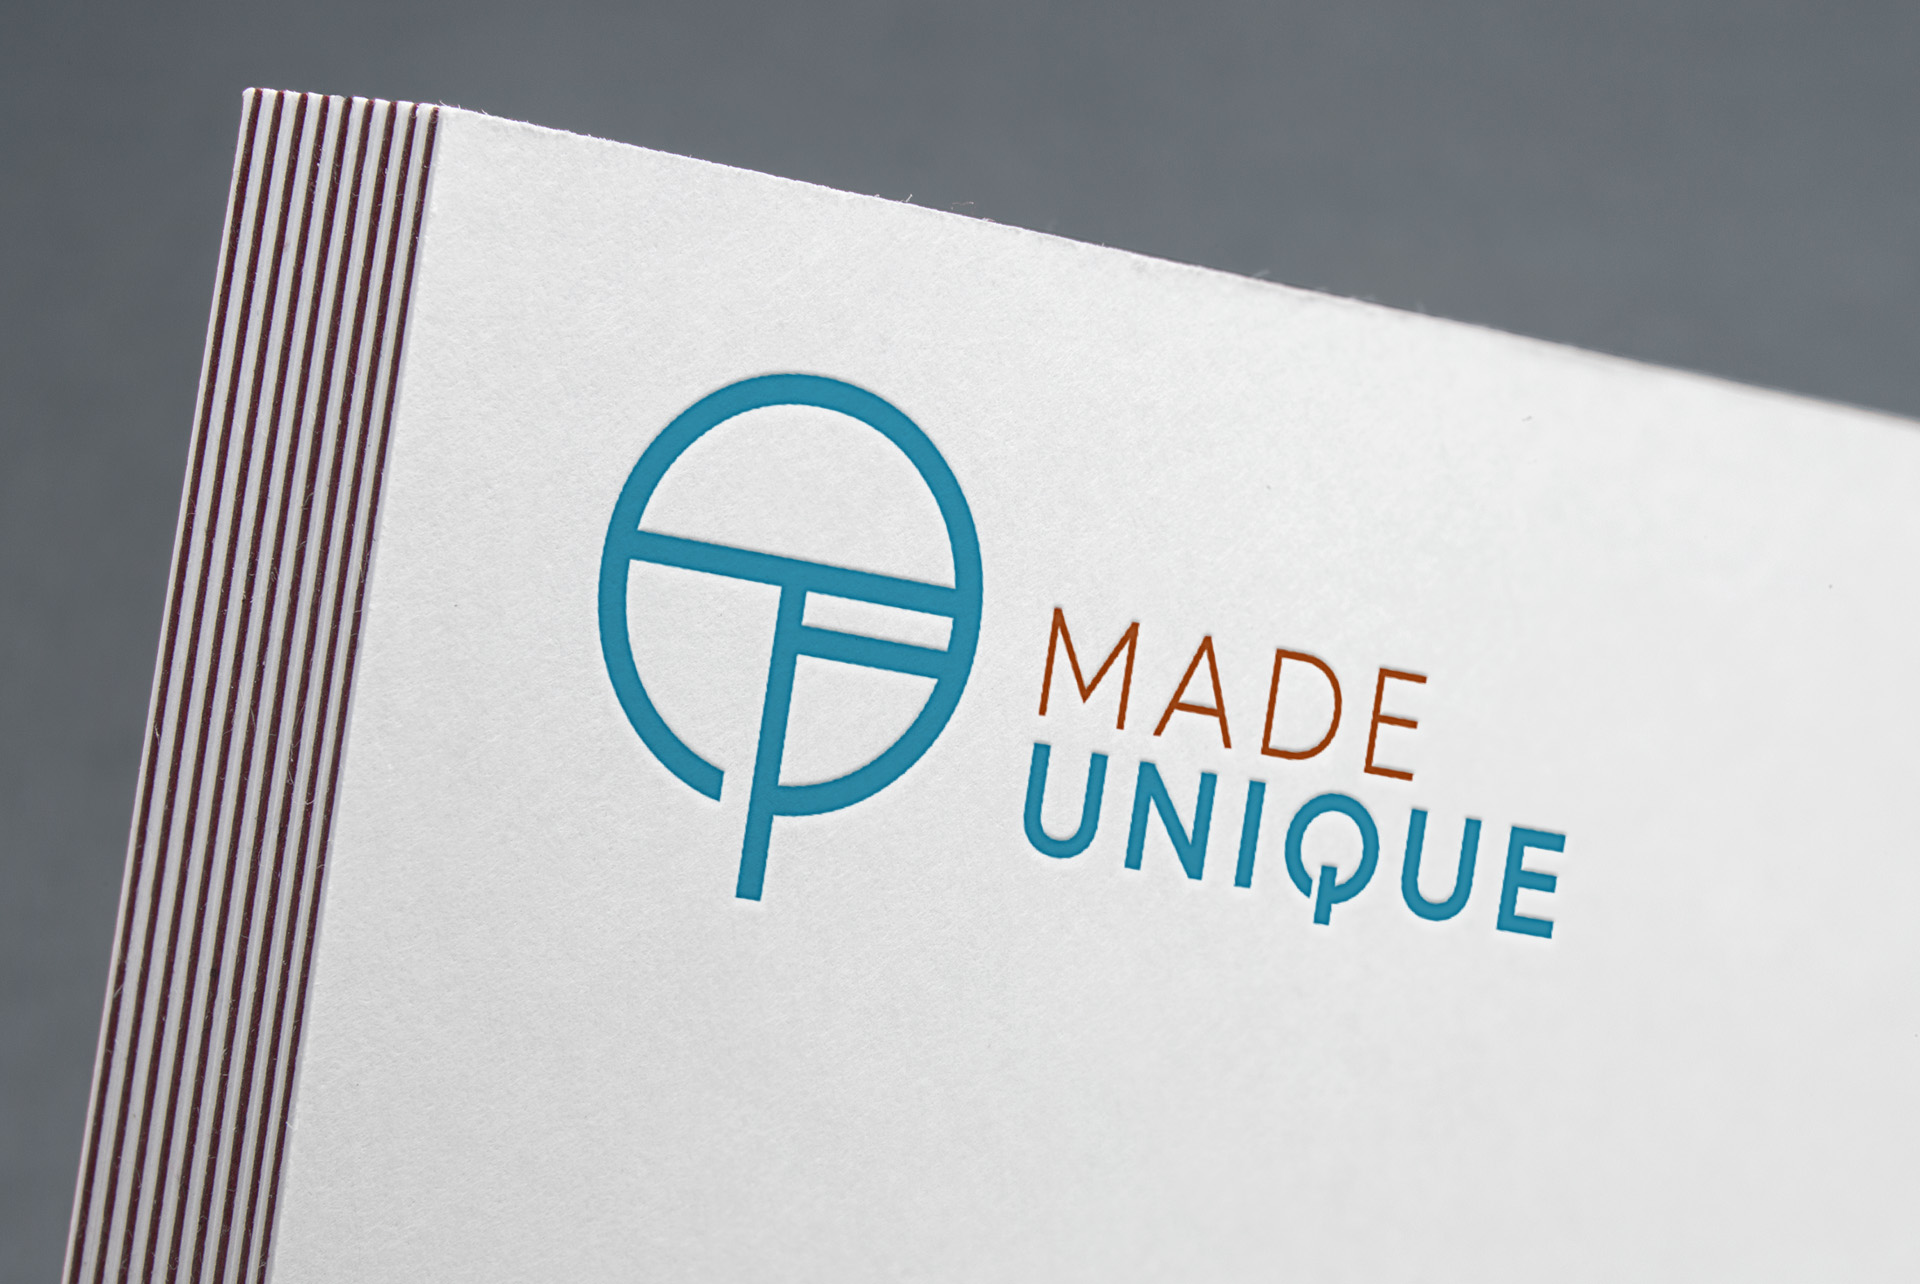 Made Unique Corporate Identity Branding